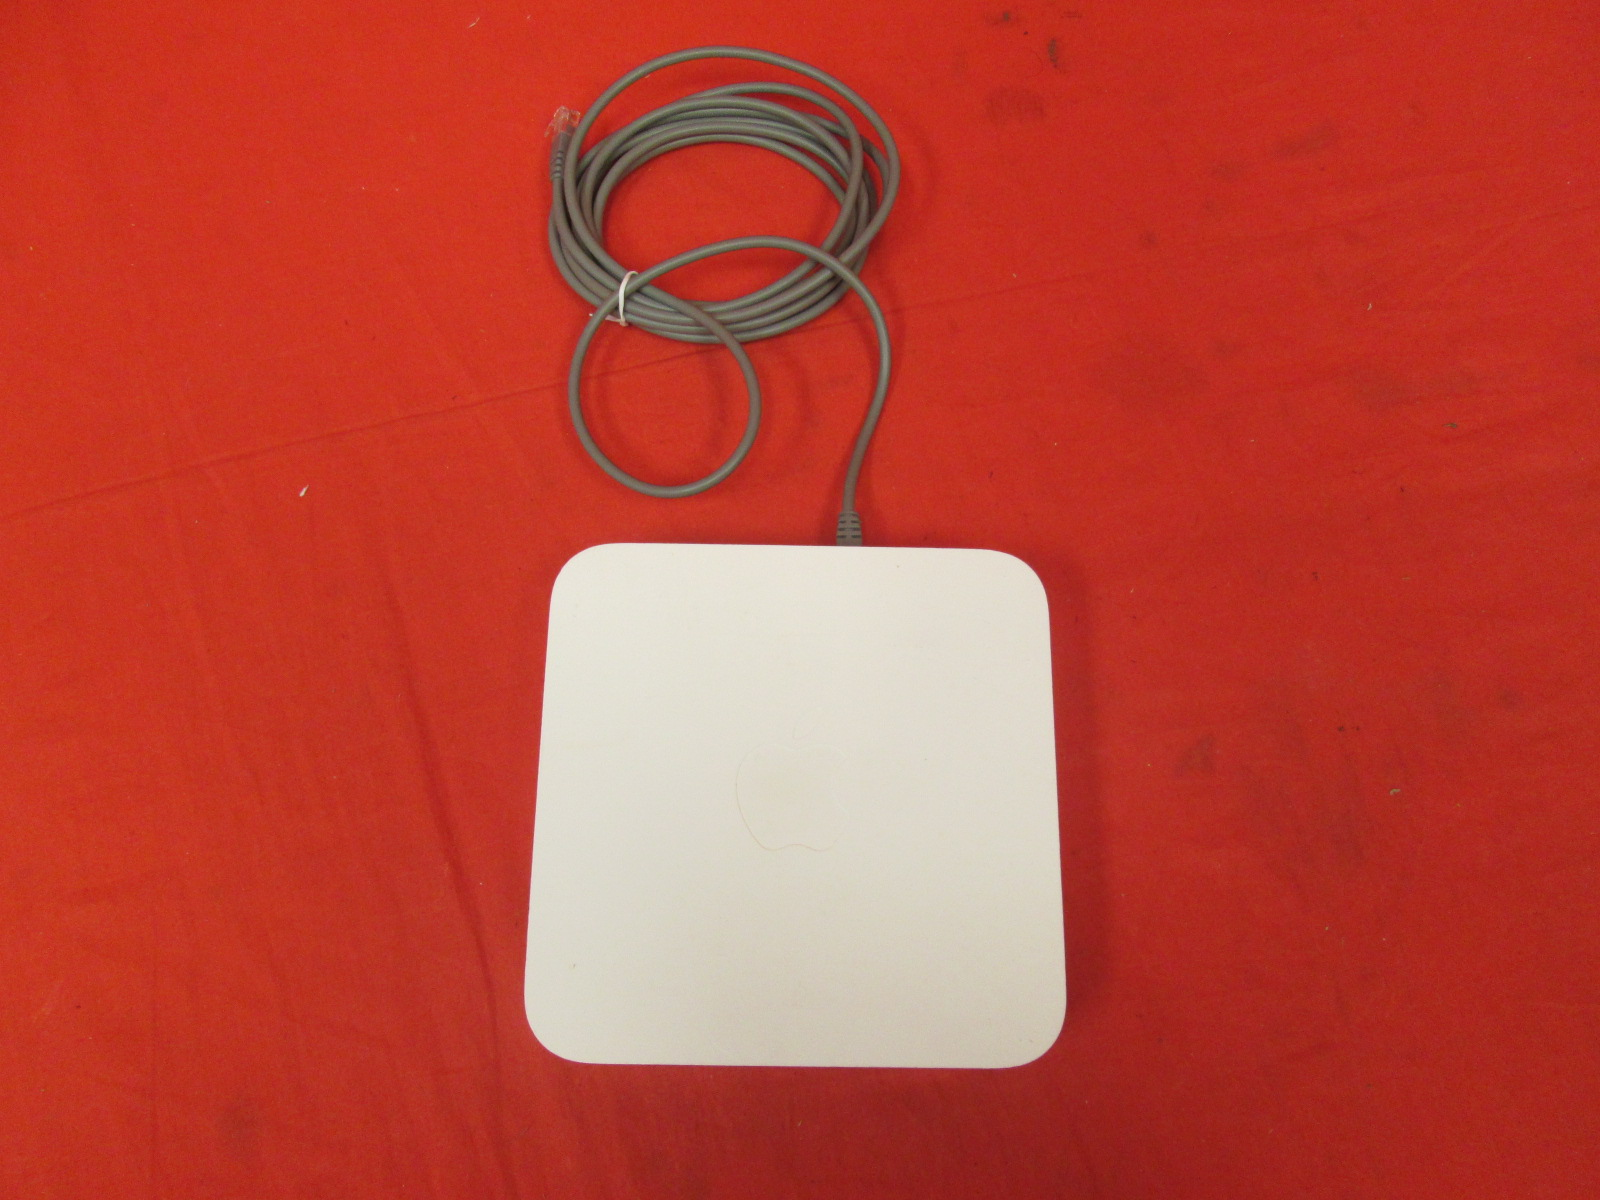 Broken Apple 5th Gen Airport Extreme Base Station MD031LL/A